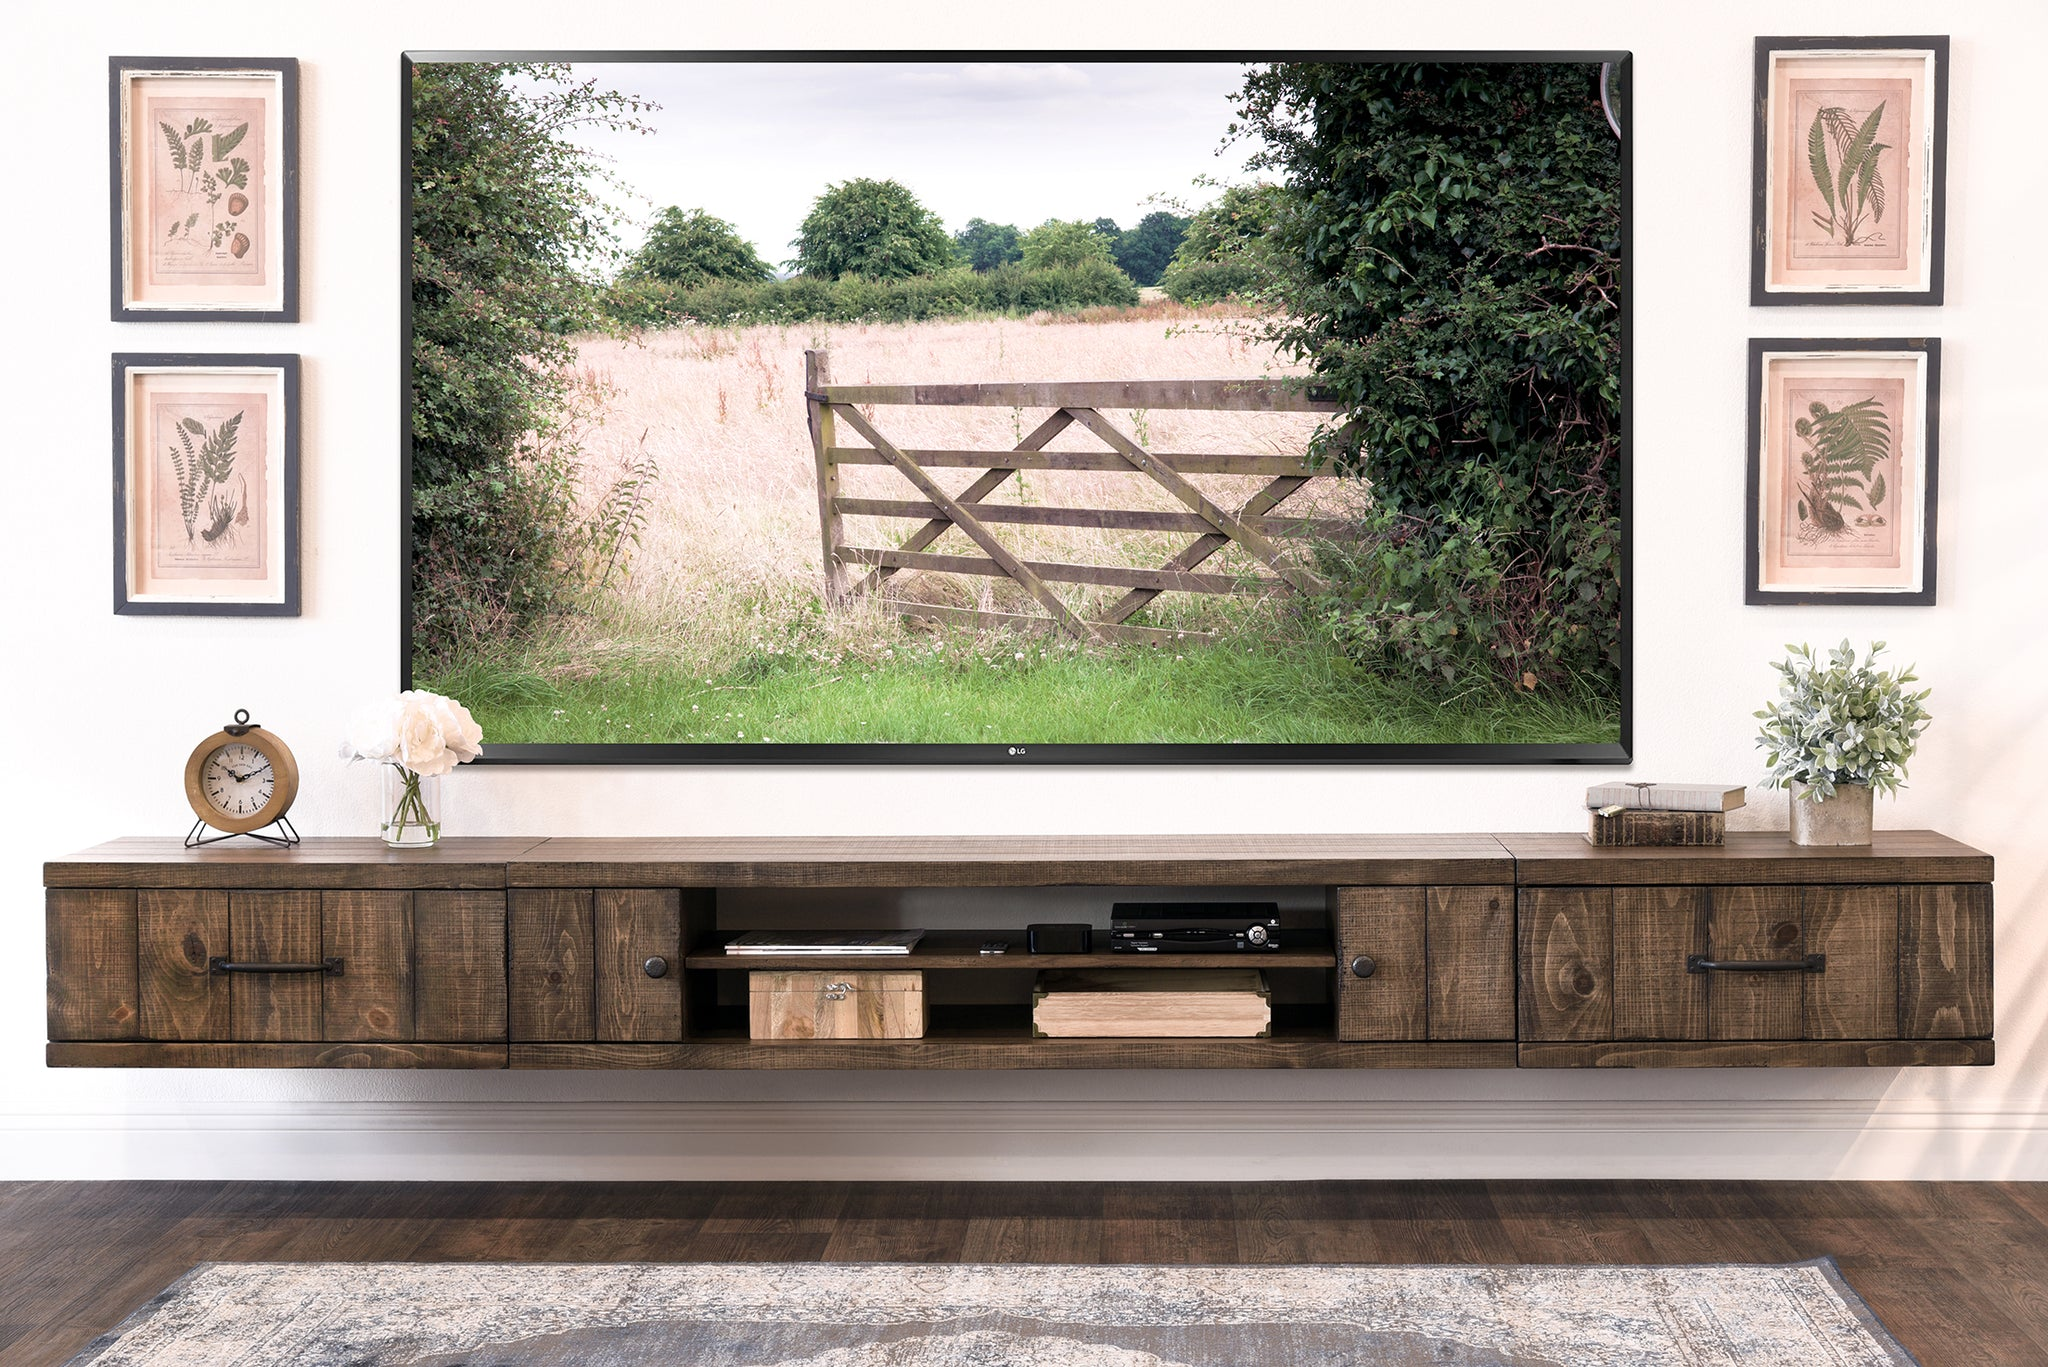 Rustic Barn Wood Style Floating TV Stand Wall Mount Entertainment Center Farmhouse Spice Woodwaves 2048x